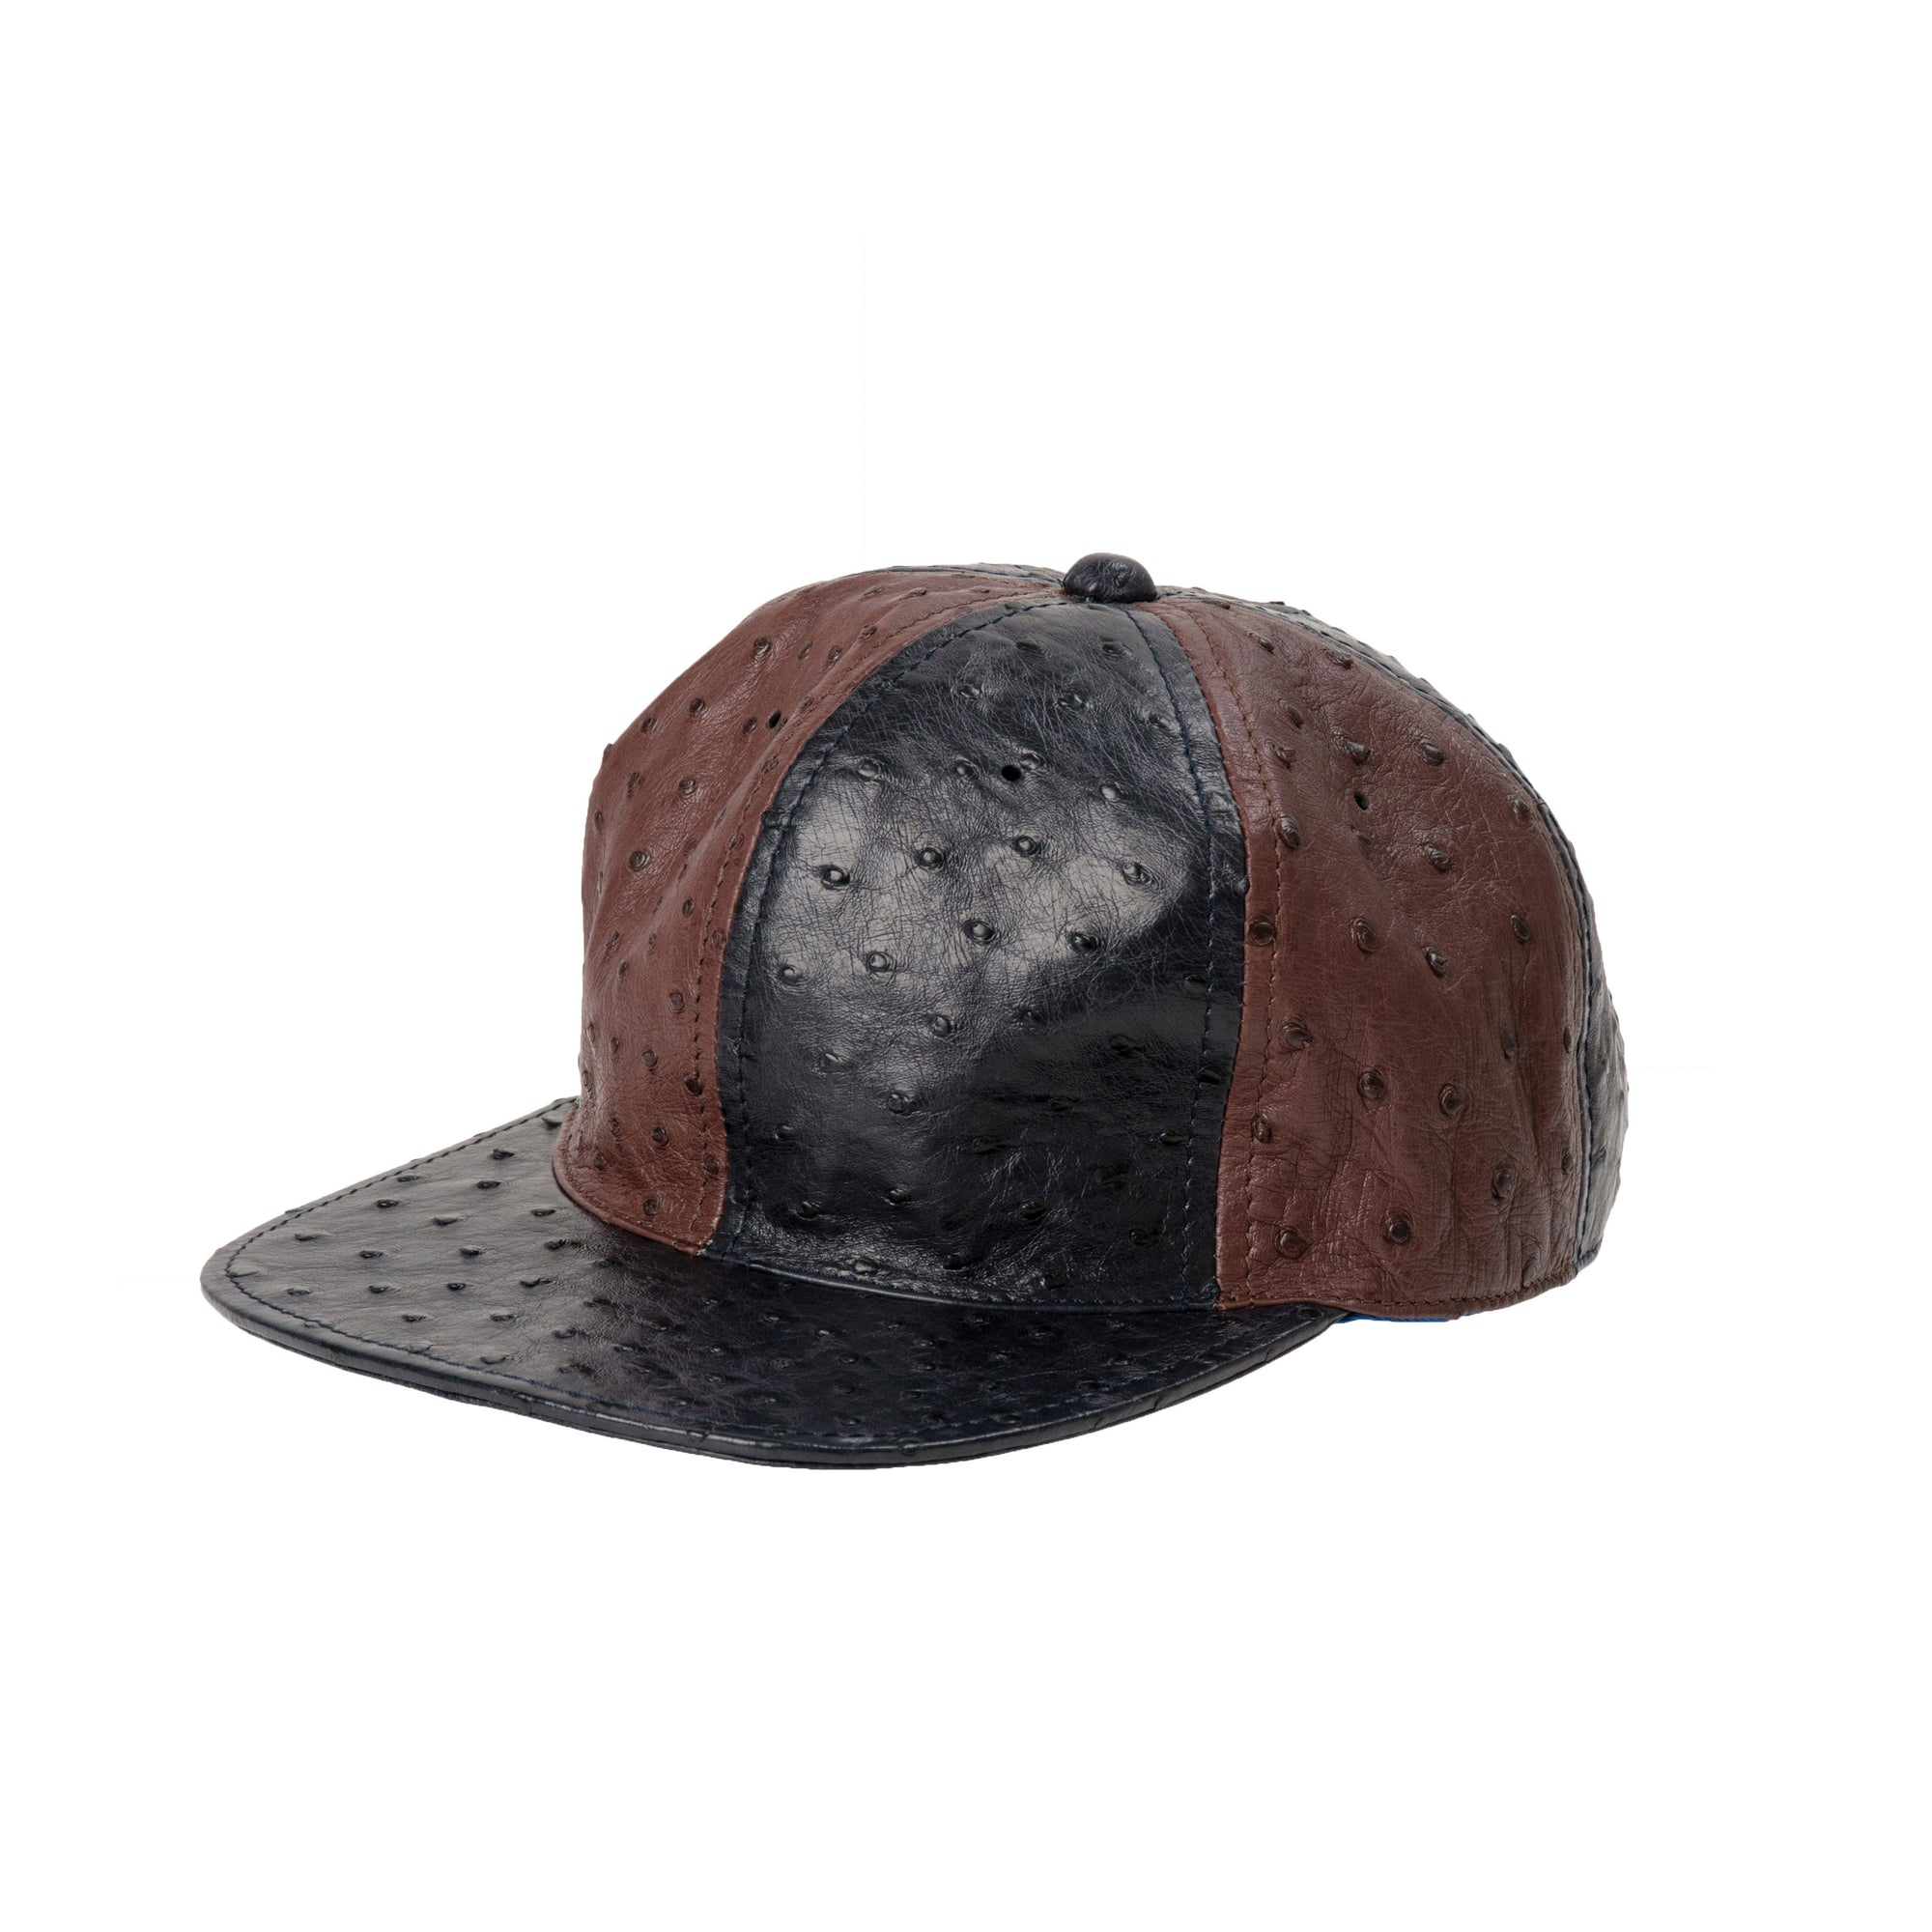 L I N 8 exotic ostrich leather hat, snapback, cap